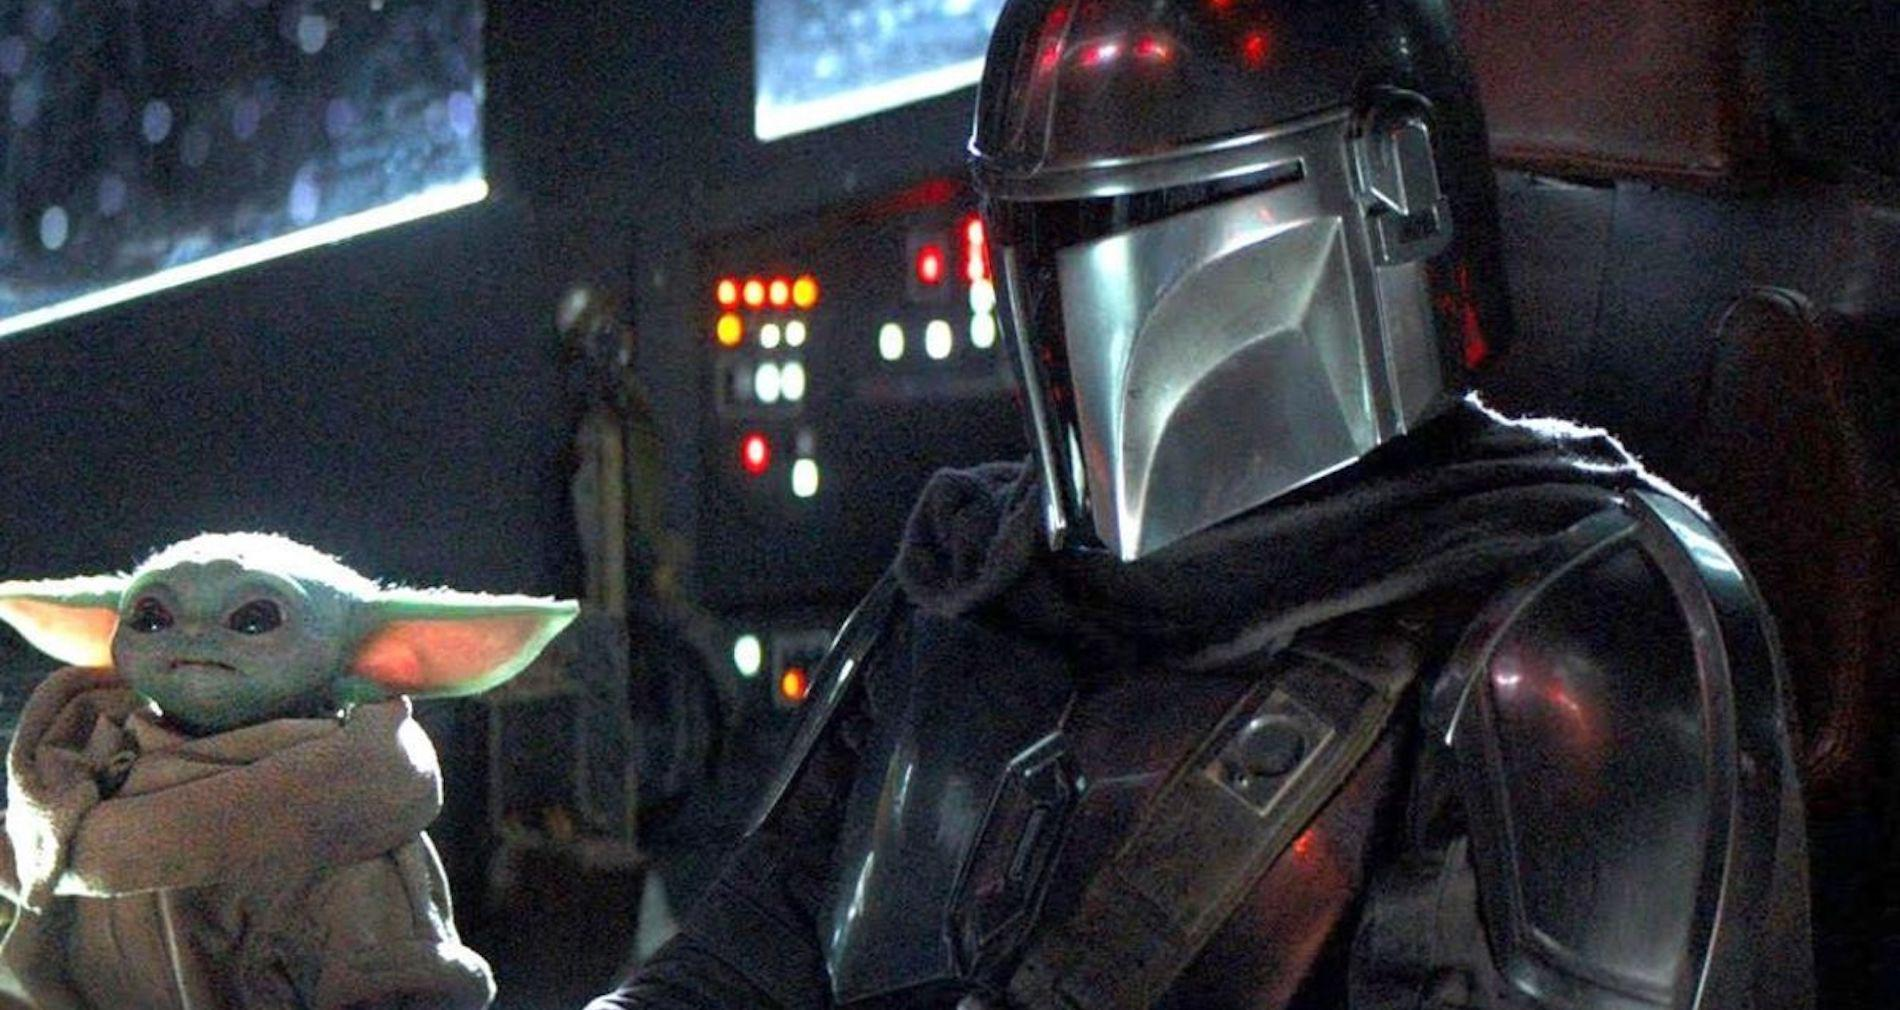 The Mandalorian is currently set for an October release date on Disney Plus.